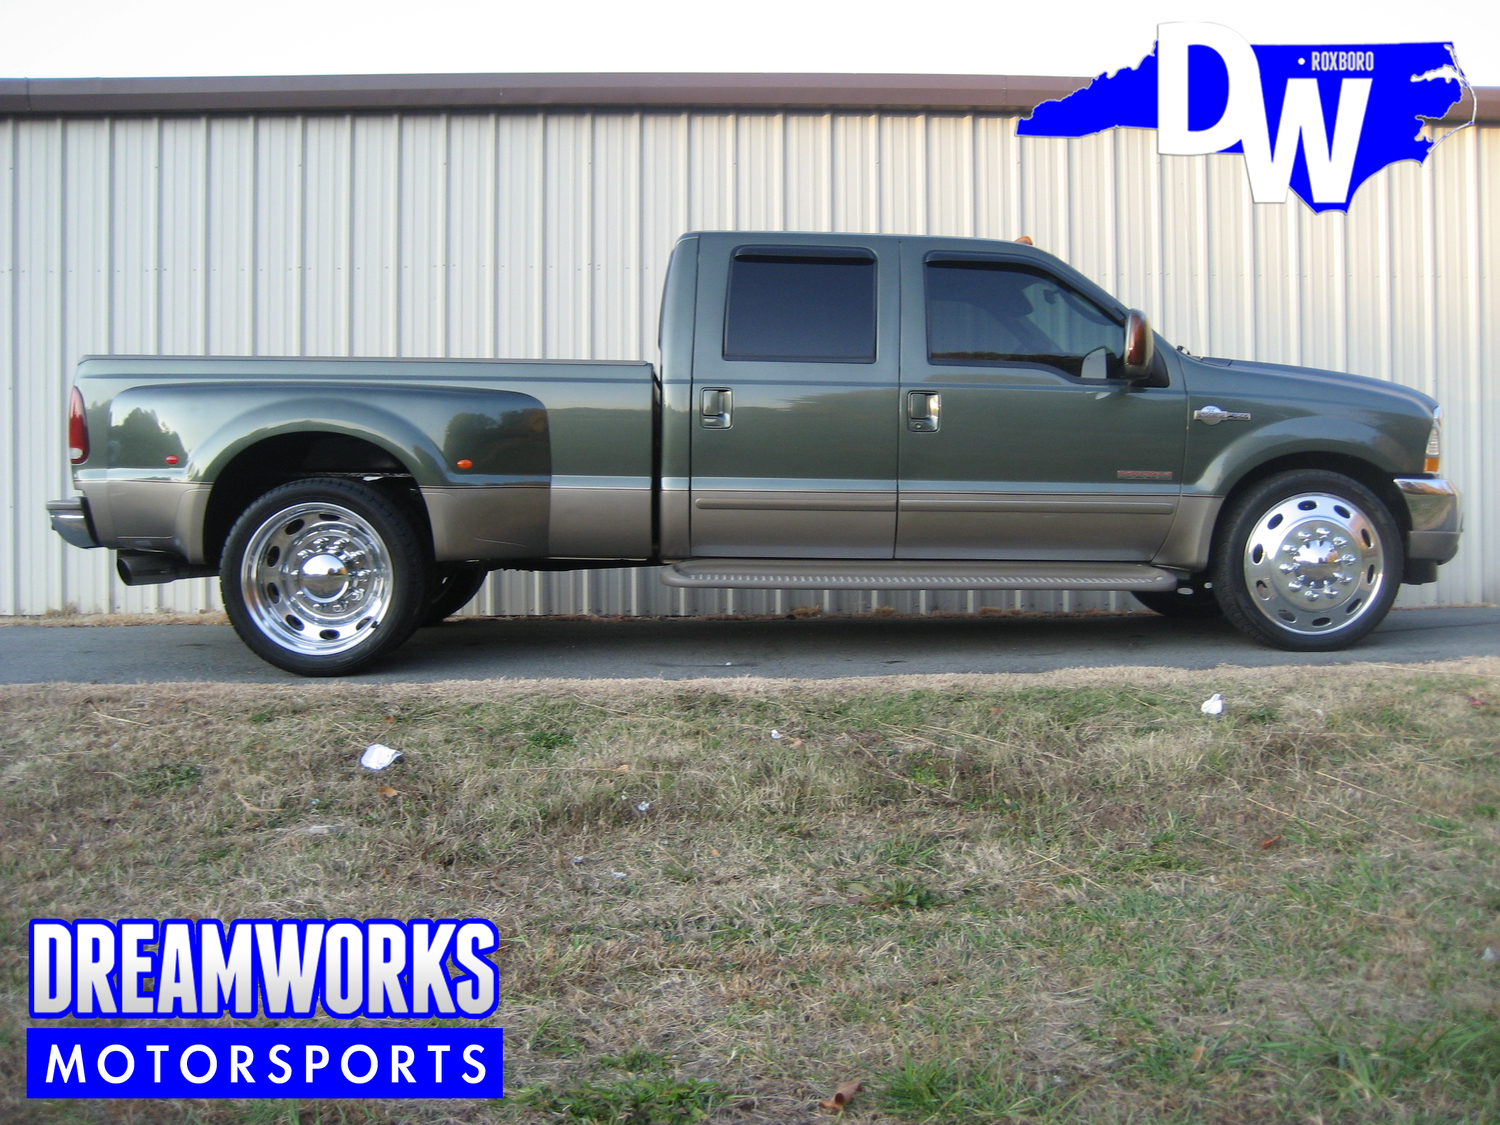 small resolution of ford f350 semi wheels dreamworks motorsports 2 jpg